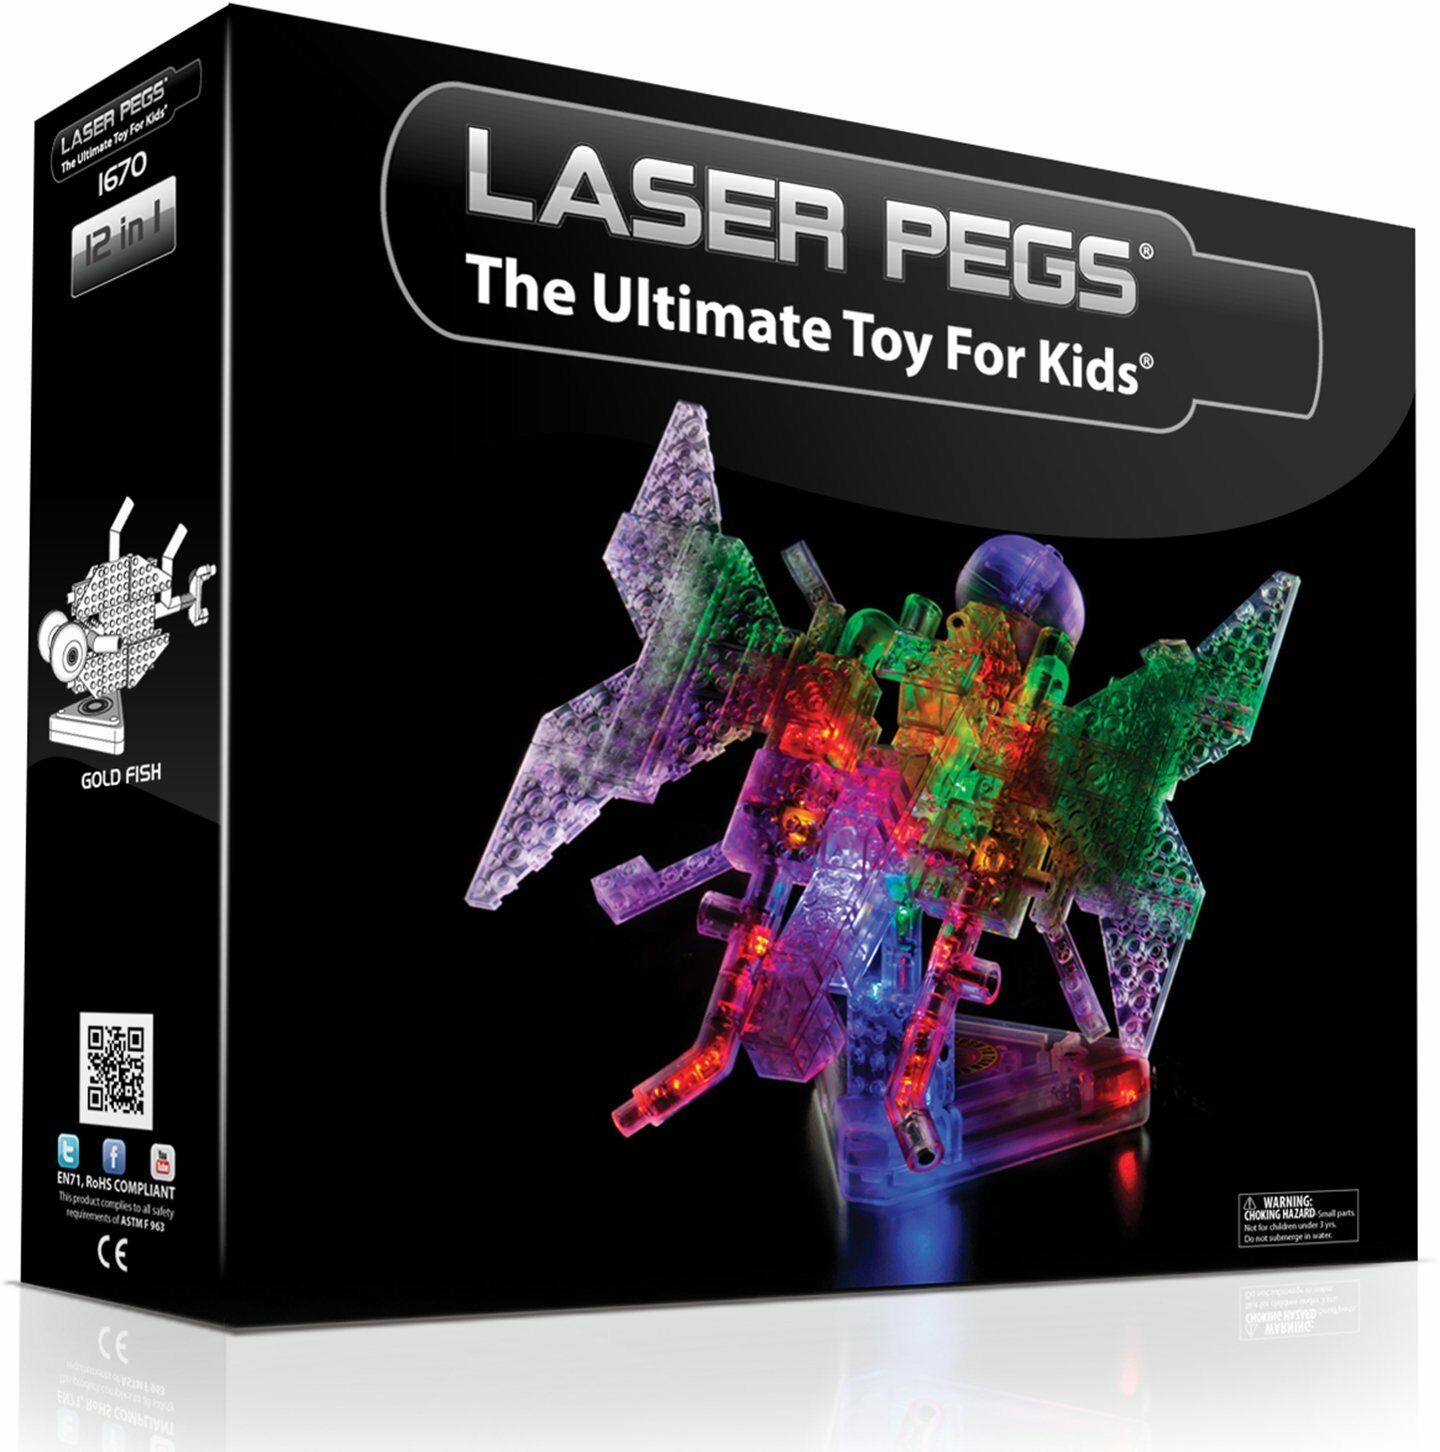 Laser Pegs 12-in-1 Butterfly Building Set by Laser Pegs